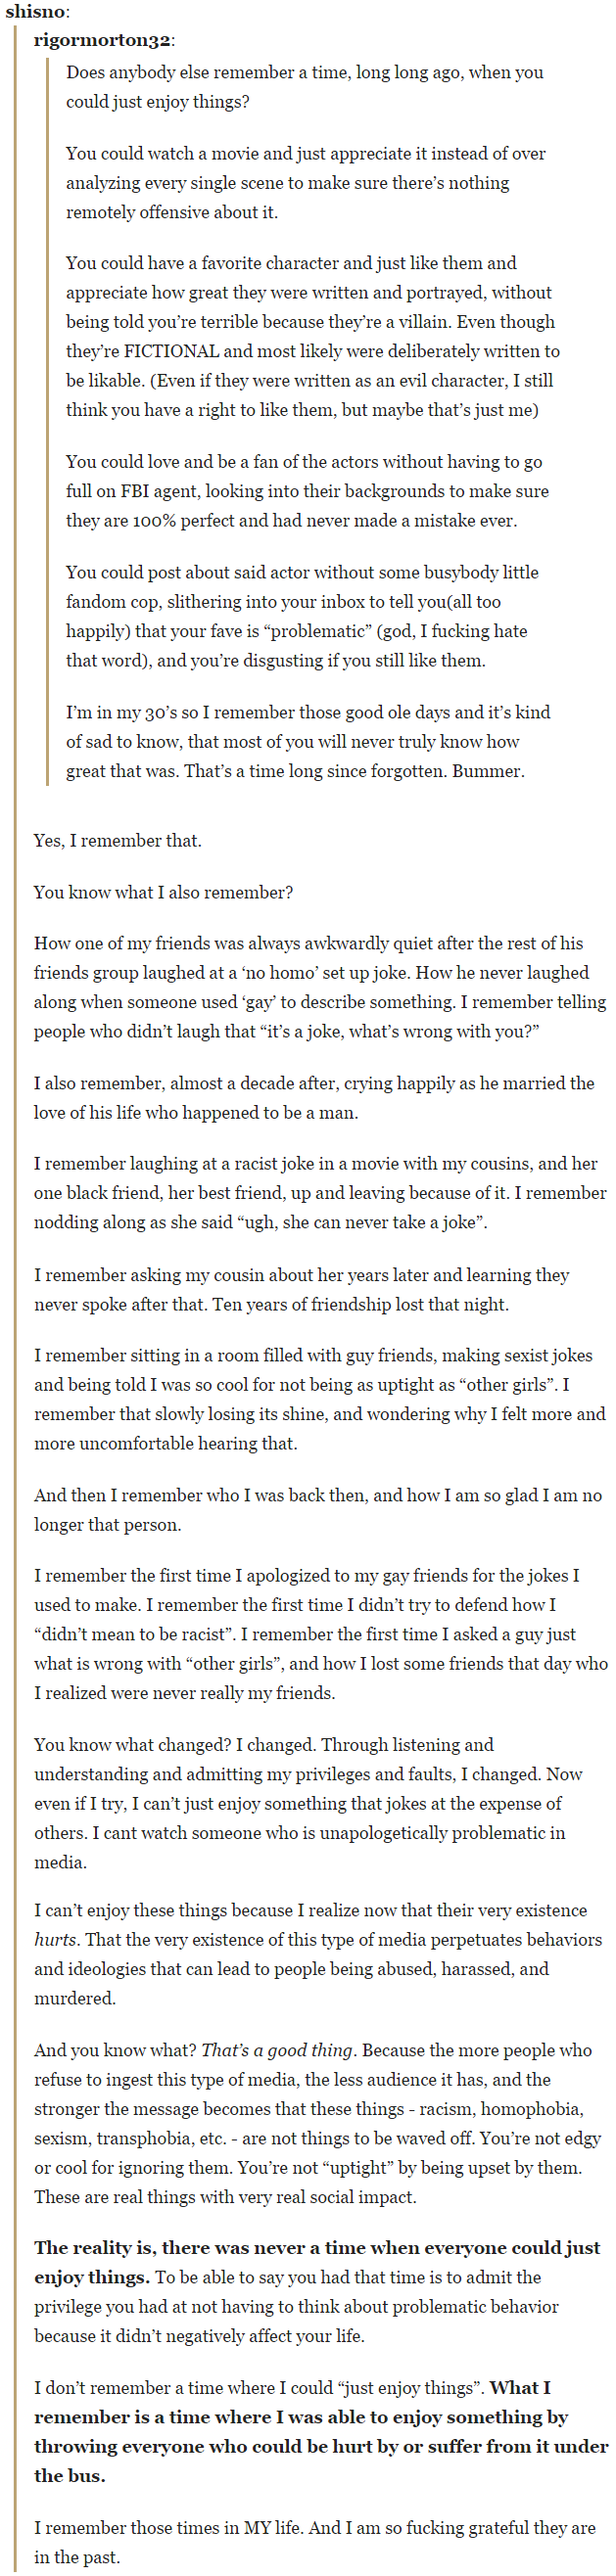 """I don't remember a time where I could """"just enjoy things"""". What I remember is a time where I was able to enjoy something by throwing everyone who could be hurt by or suffer from it under the bus. I remember those times in MY life. And I am so fucking grateful they are in the past."""